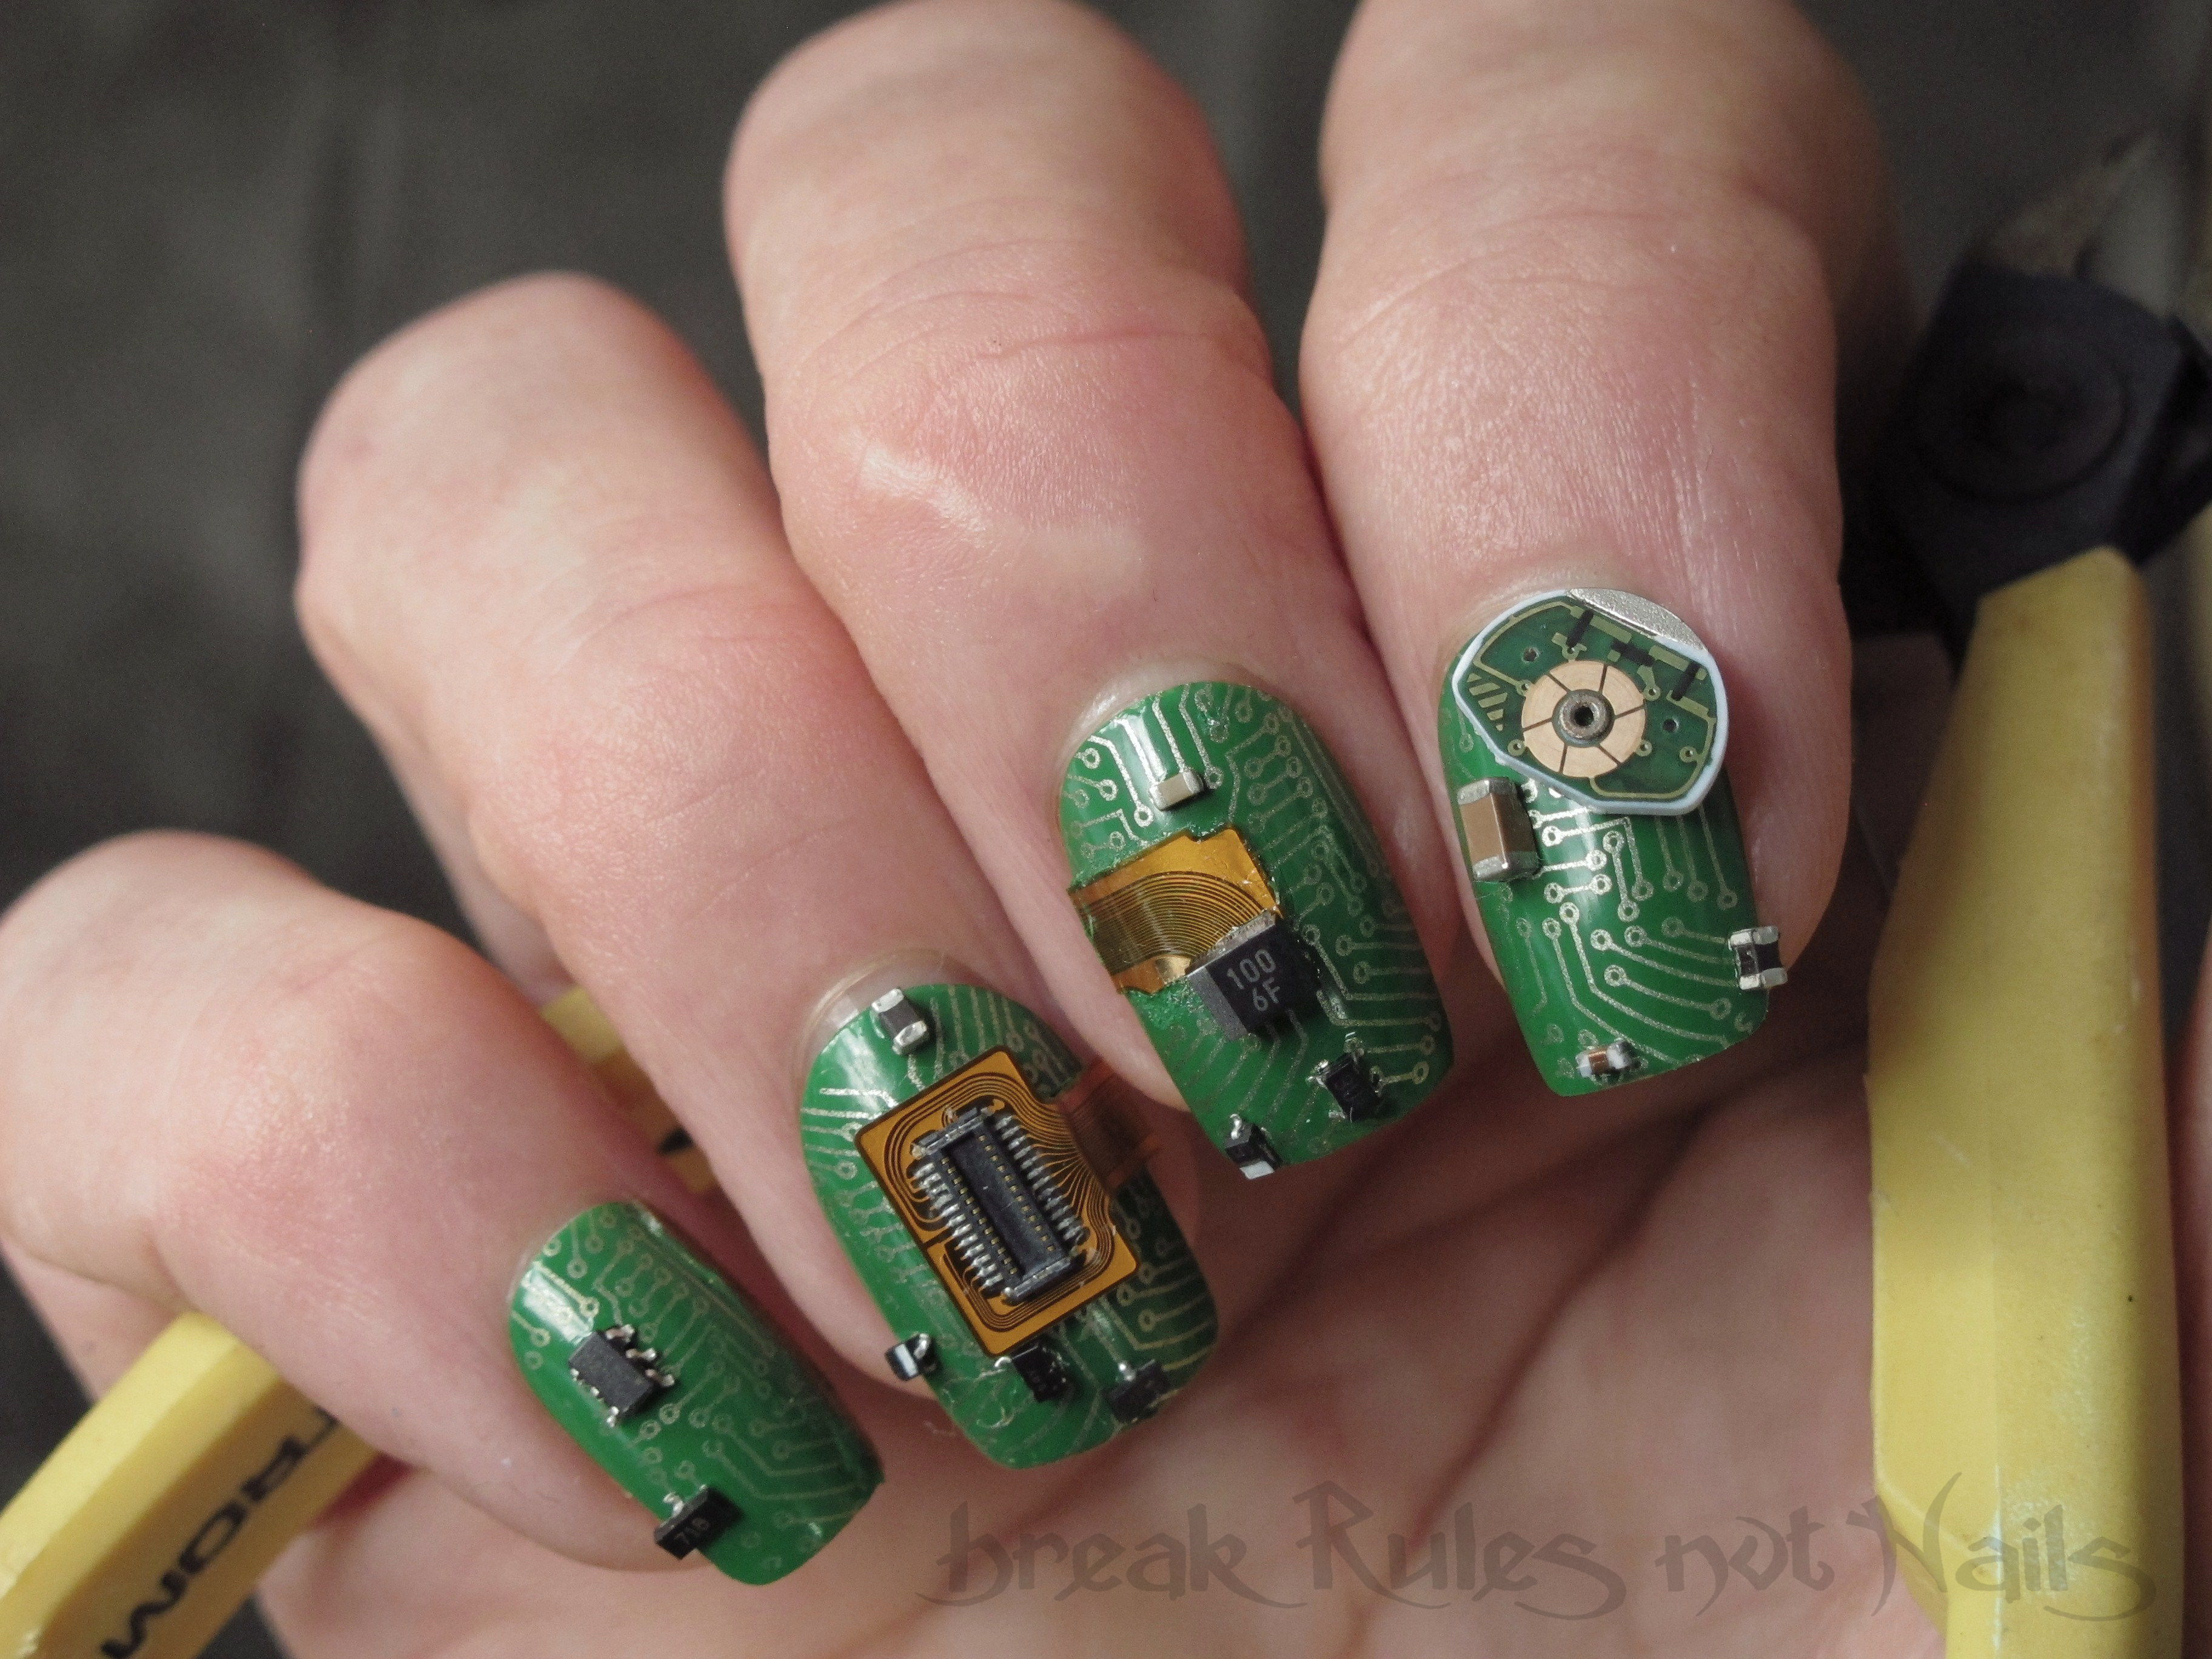 electronic component nail art | Break rules, not nails